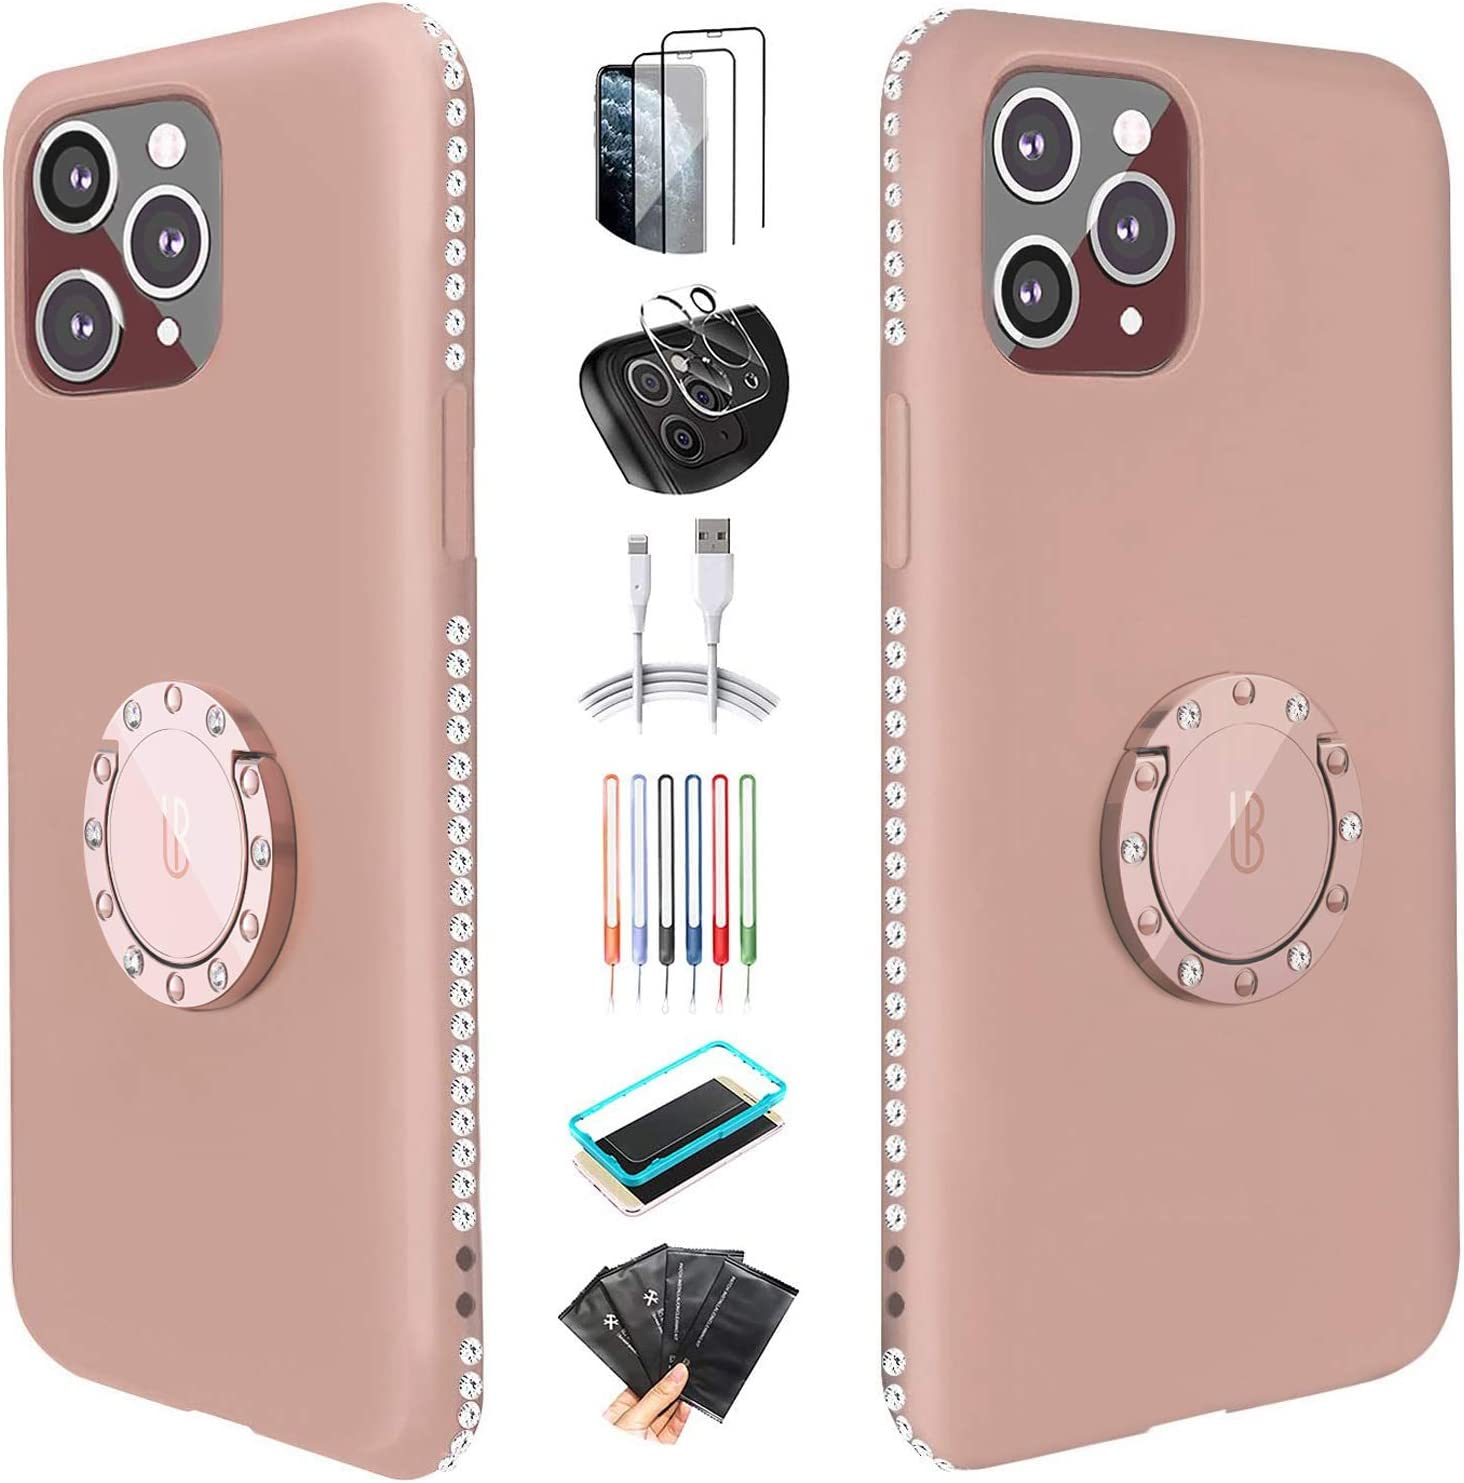 [Super Giveaways] UBUNU Silicone iPhone 12 Pro Max Case for Women, Liquid Silicone Glitter Bling Rhinestone Bumper with Ring Kickstand Grip Holder Cute iPhone 12 Pro Max Case 6.7 inch - Sandy Pink